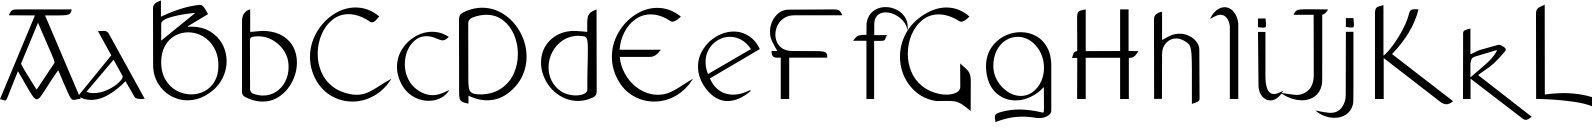 Anchor Regular Font